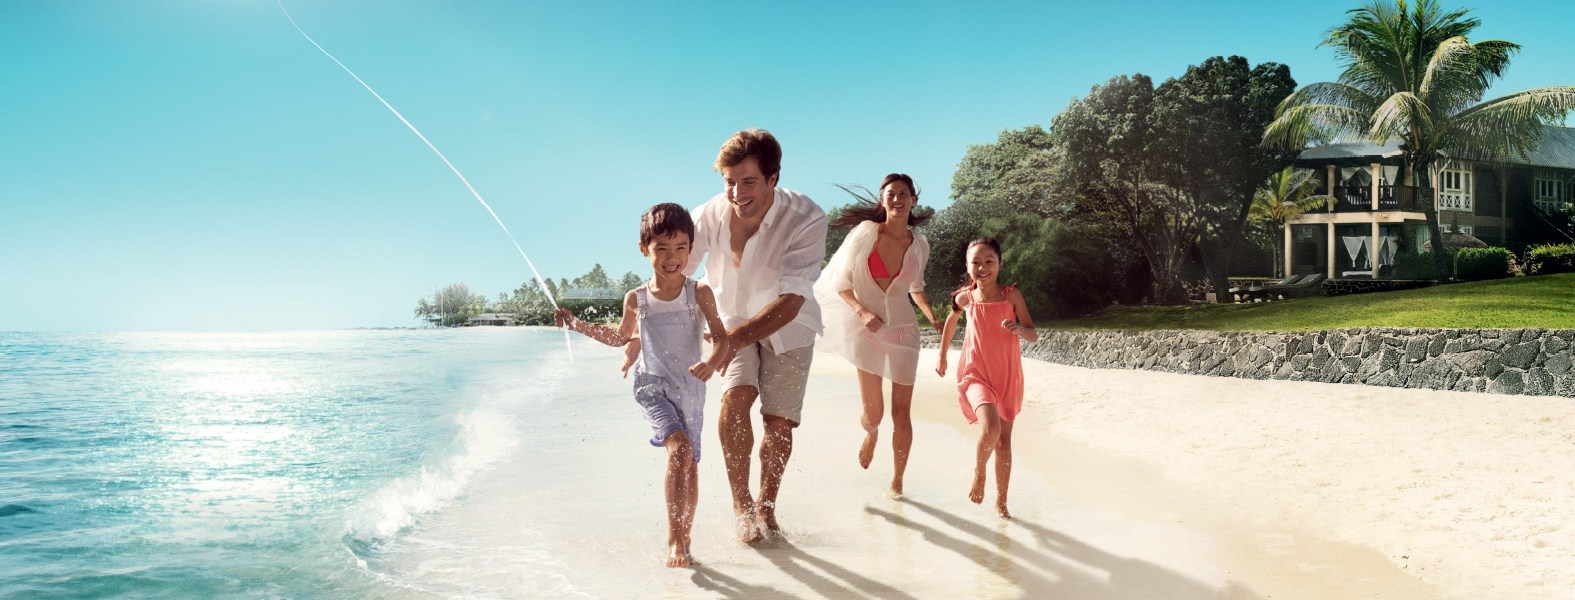 Create Special Memories with Your Loved Ones at Club Med's Family Nature Fun this Summer